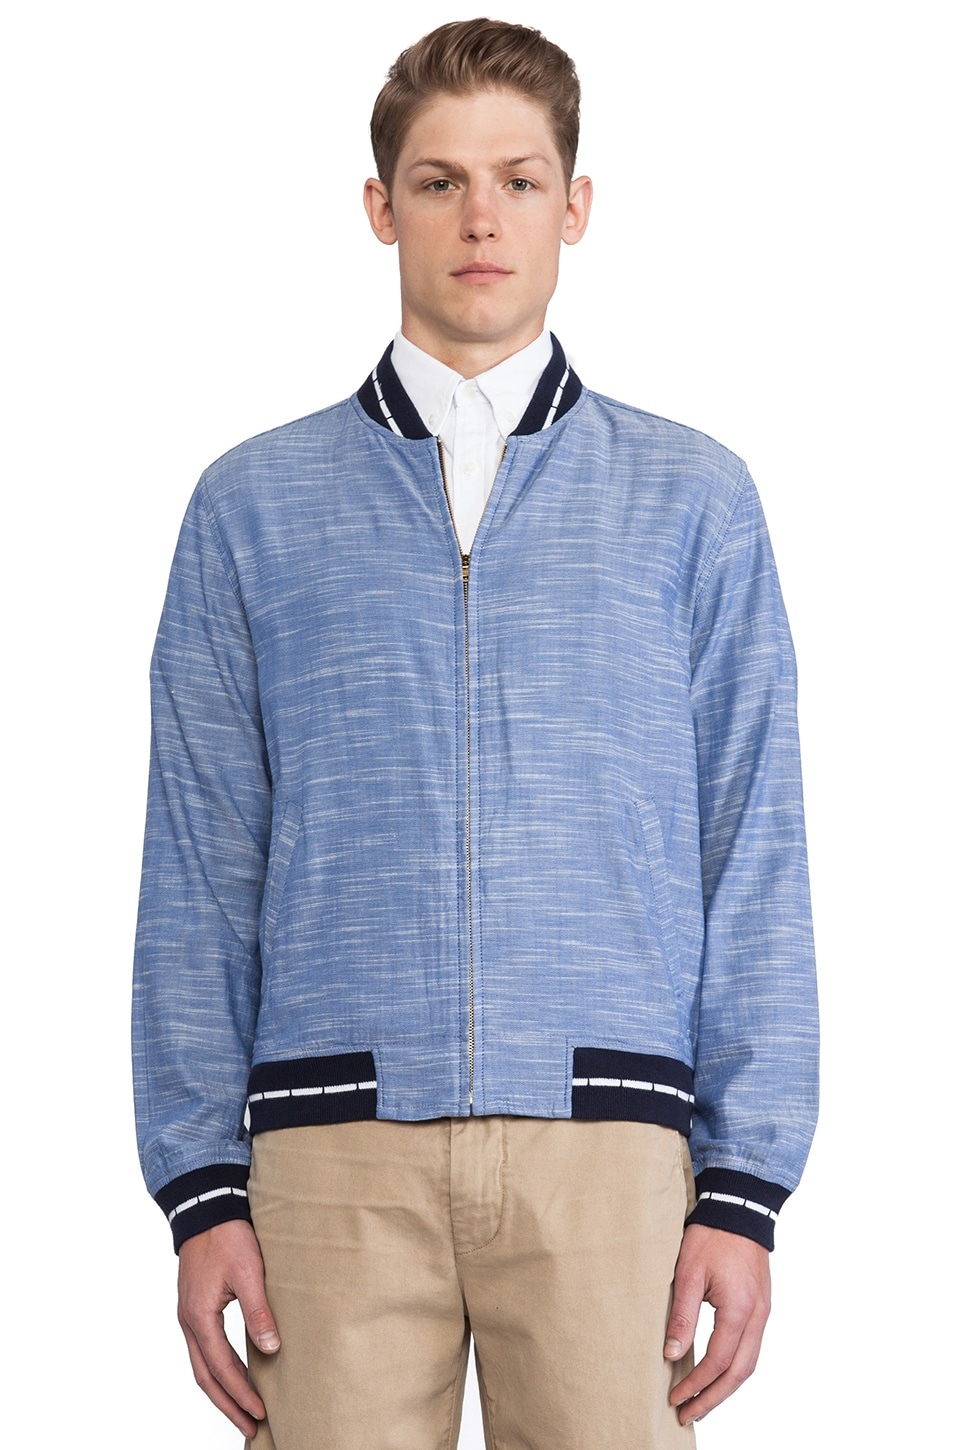 GANT Rugger Chambray Varsity Jacket in Indigo